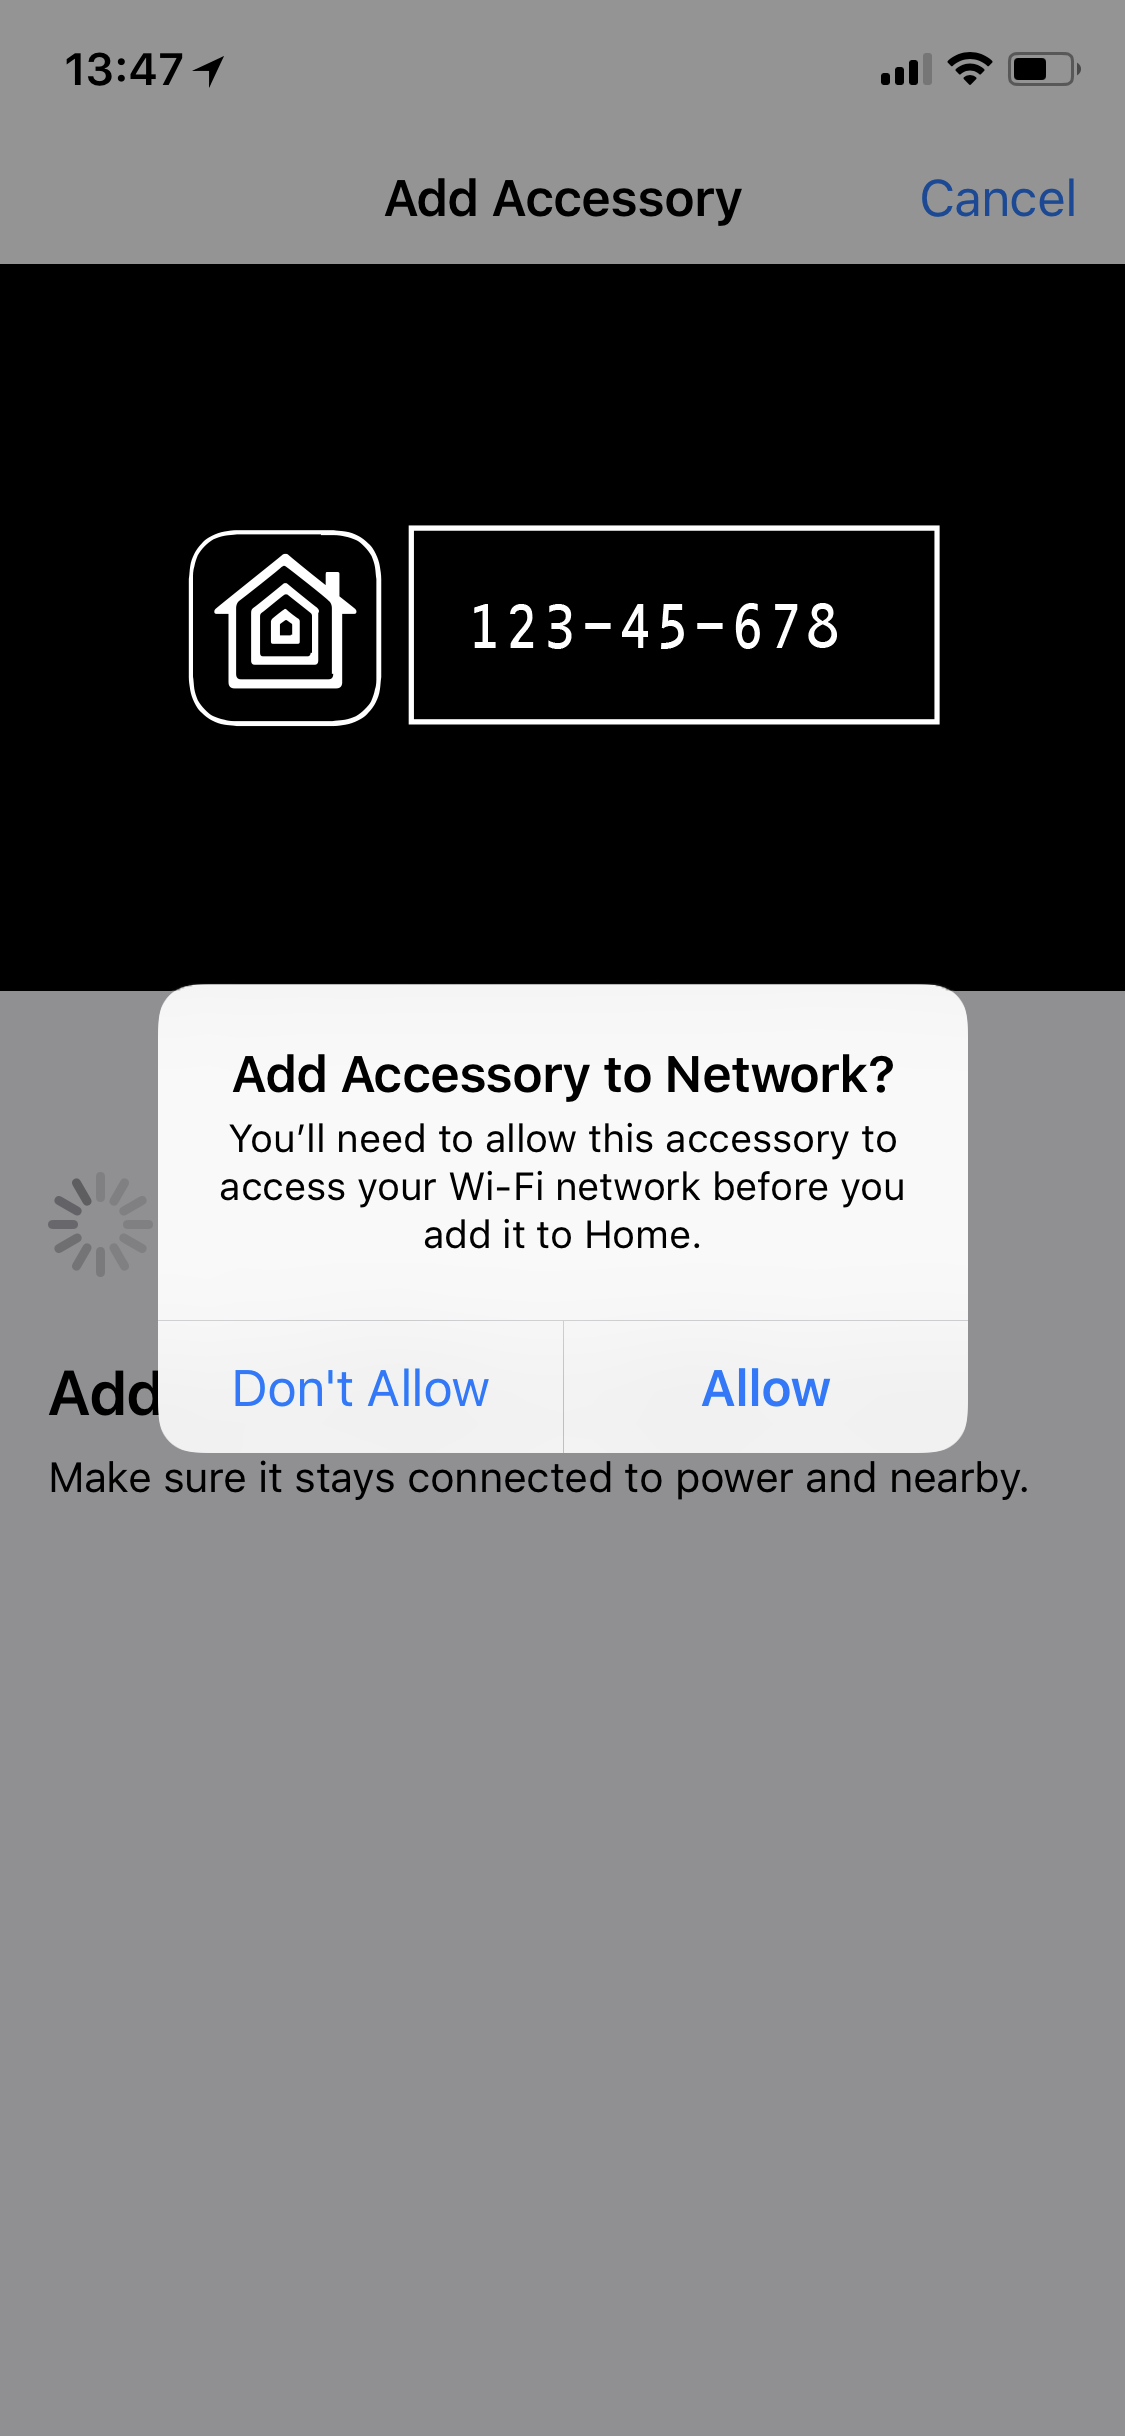 Add_accessory_to_network.PNG